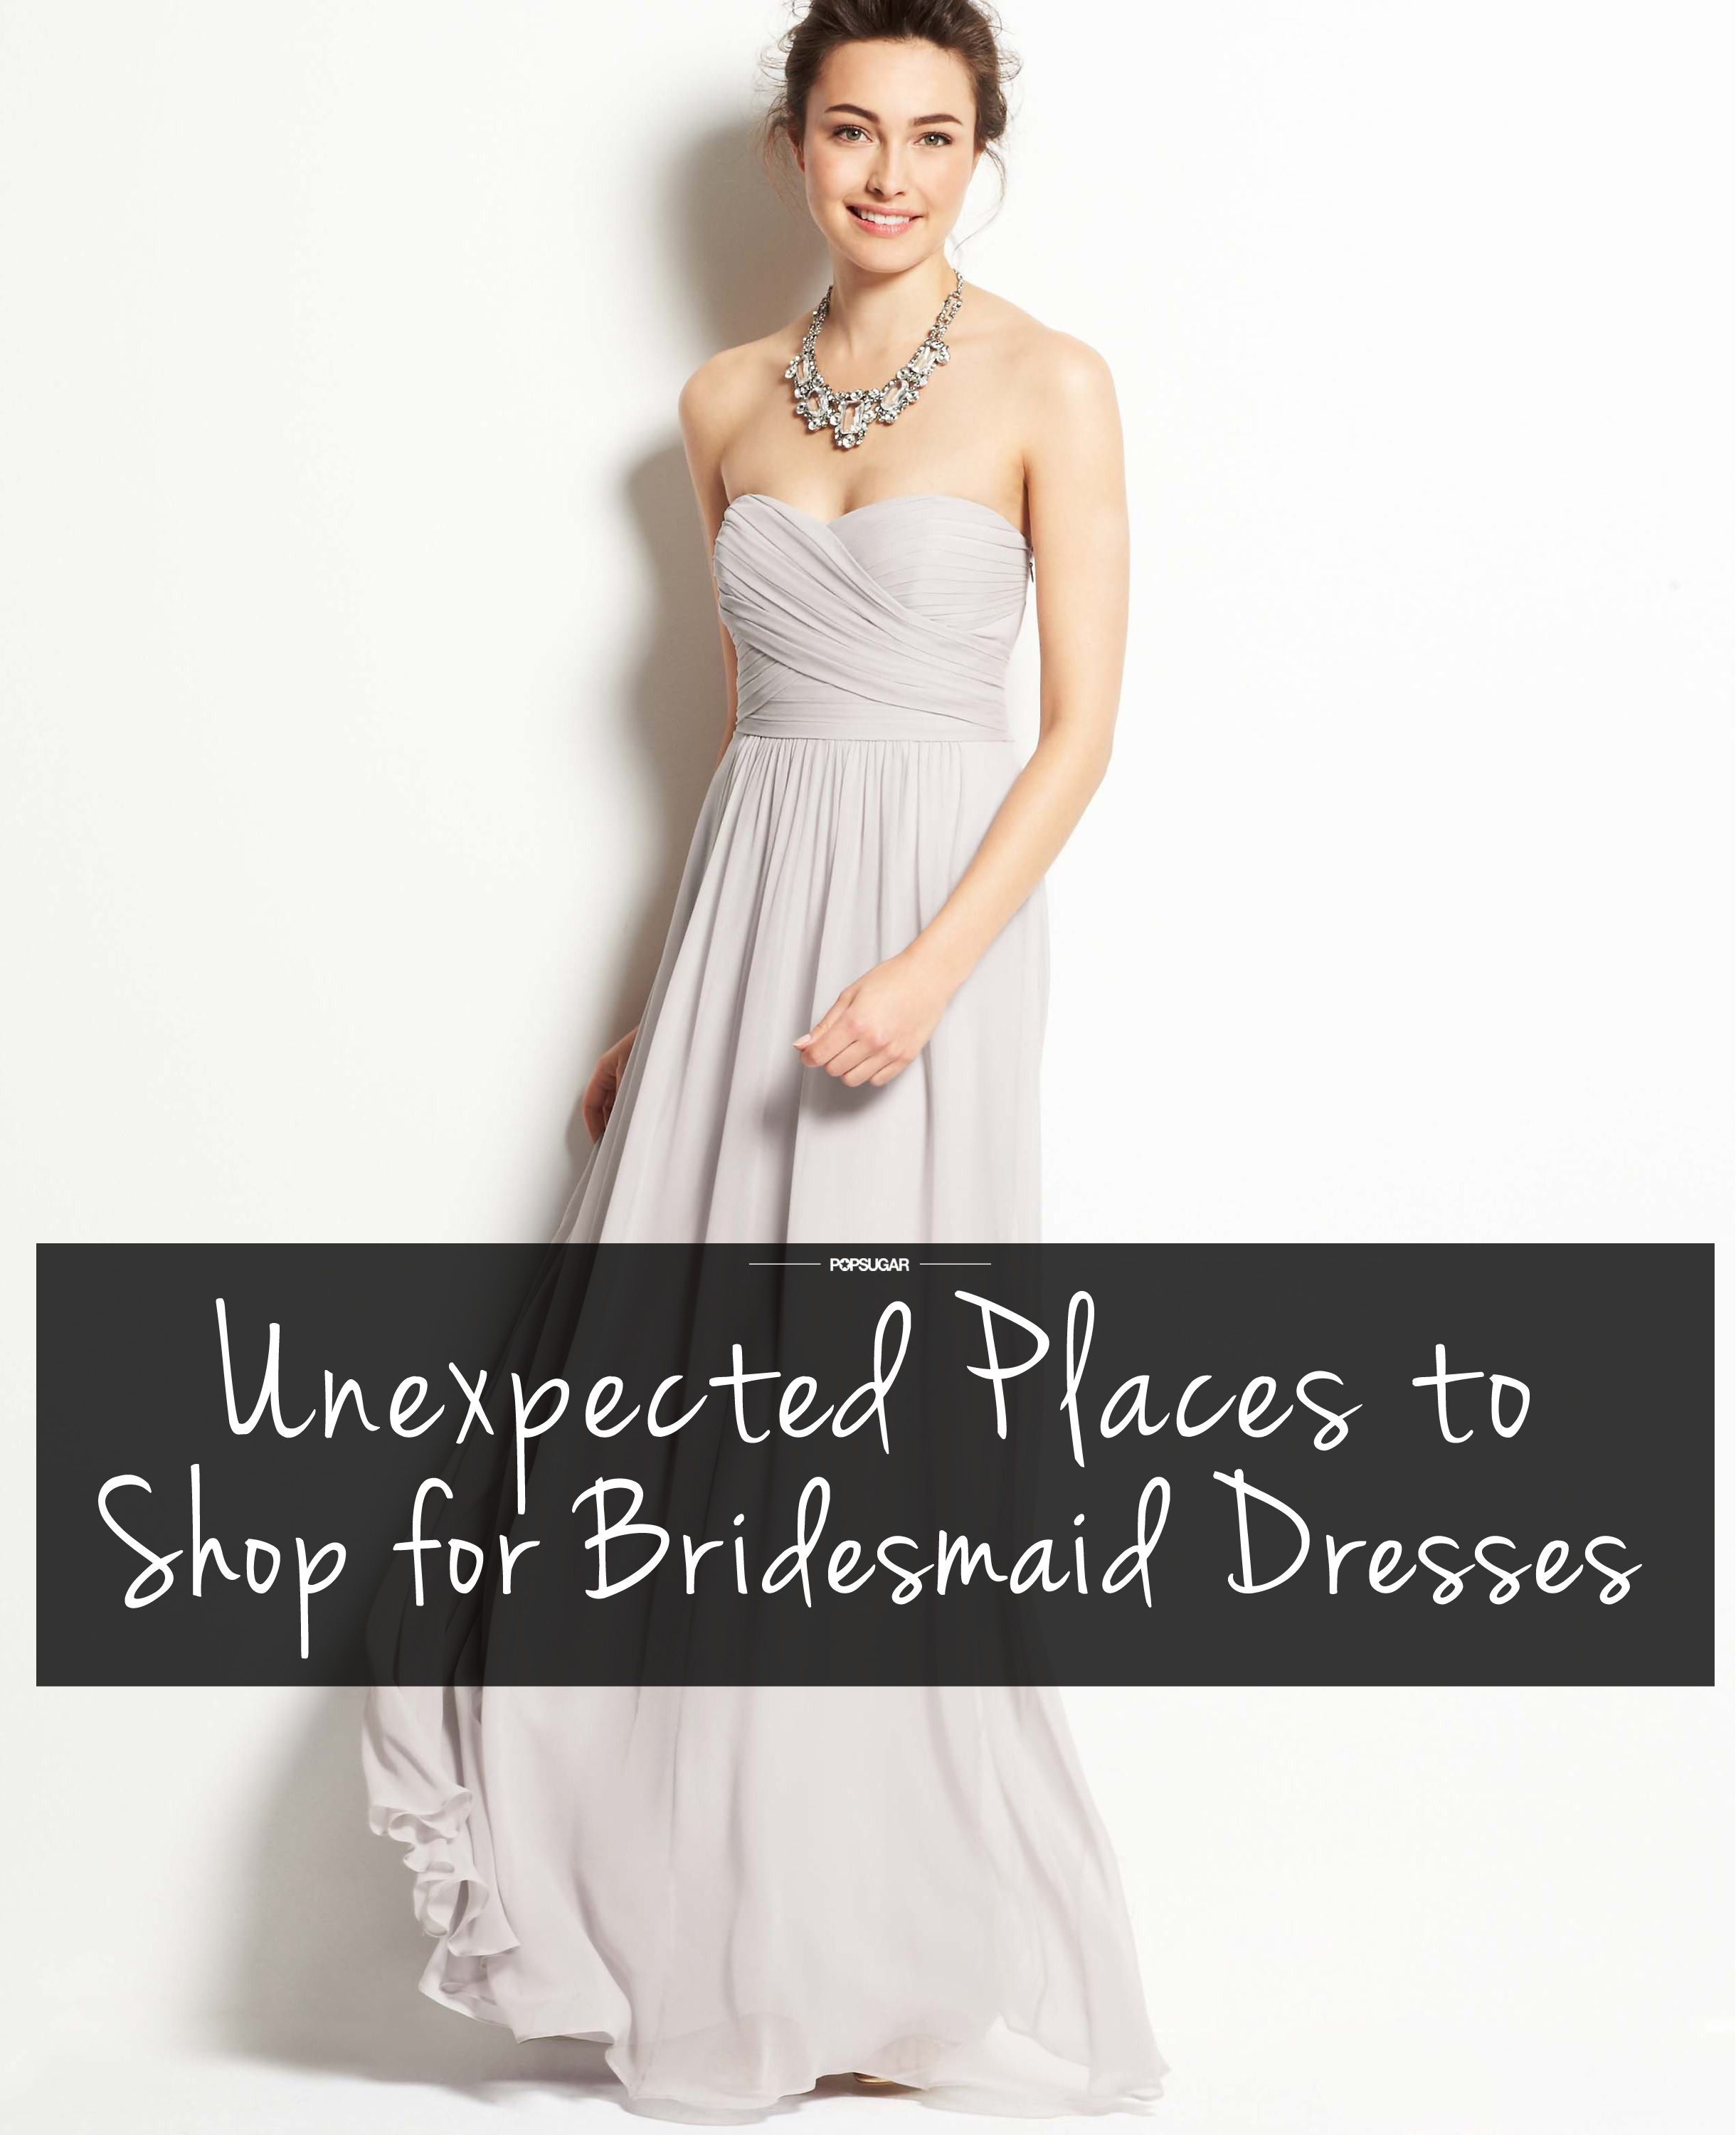 25 places youd never think to buy bridesmaid dresses from 25 places youd never think to buy bridesmaid dresses from ombrellifo Gallery